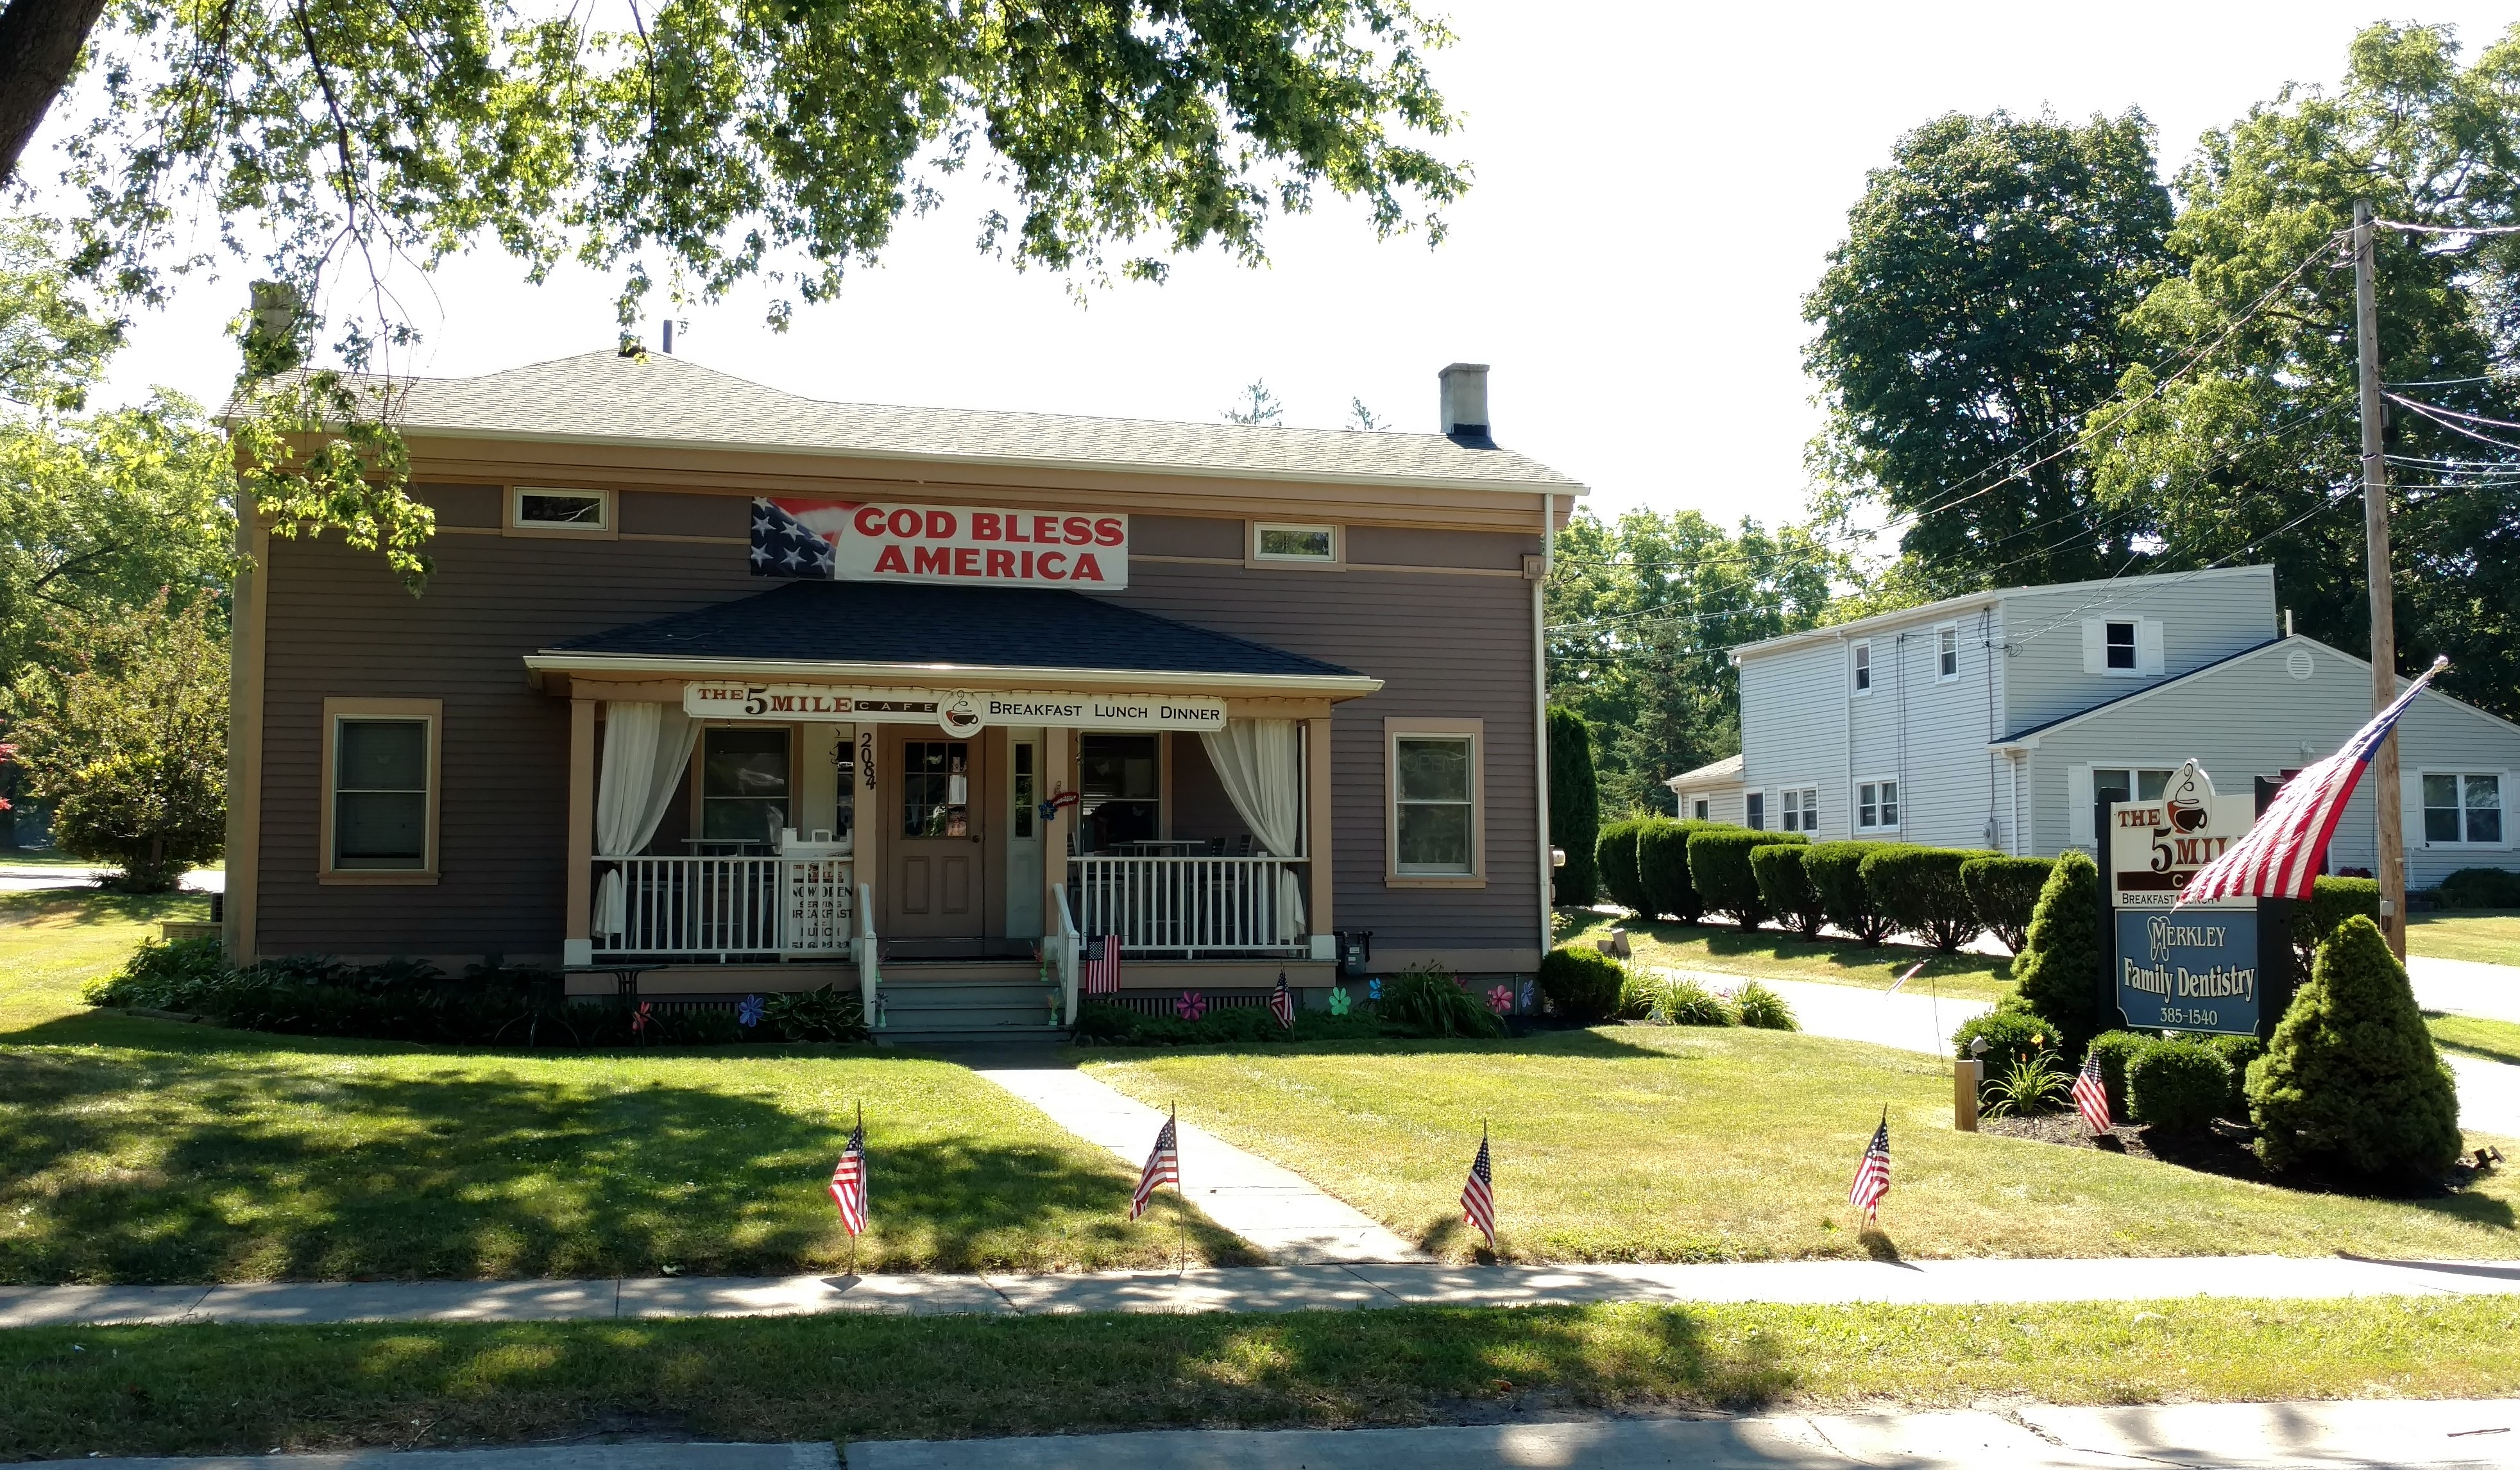 Five Mile Cafe in Penfield, NY, displaying flags and banner